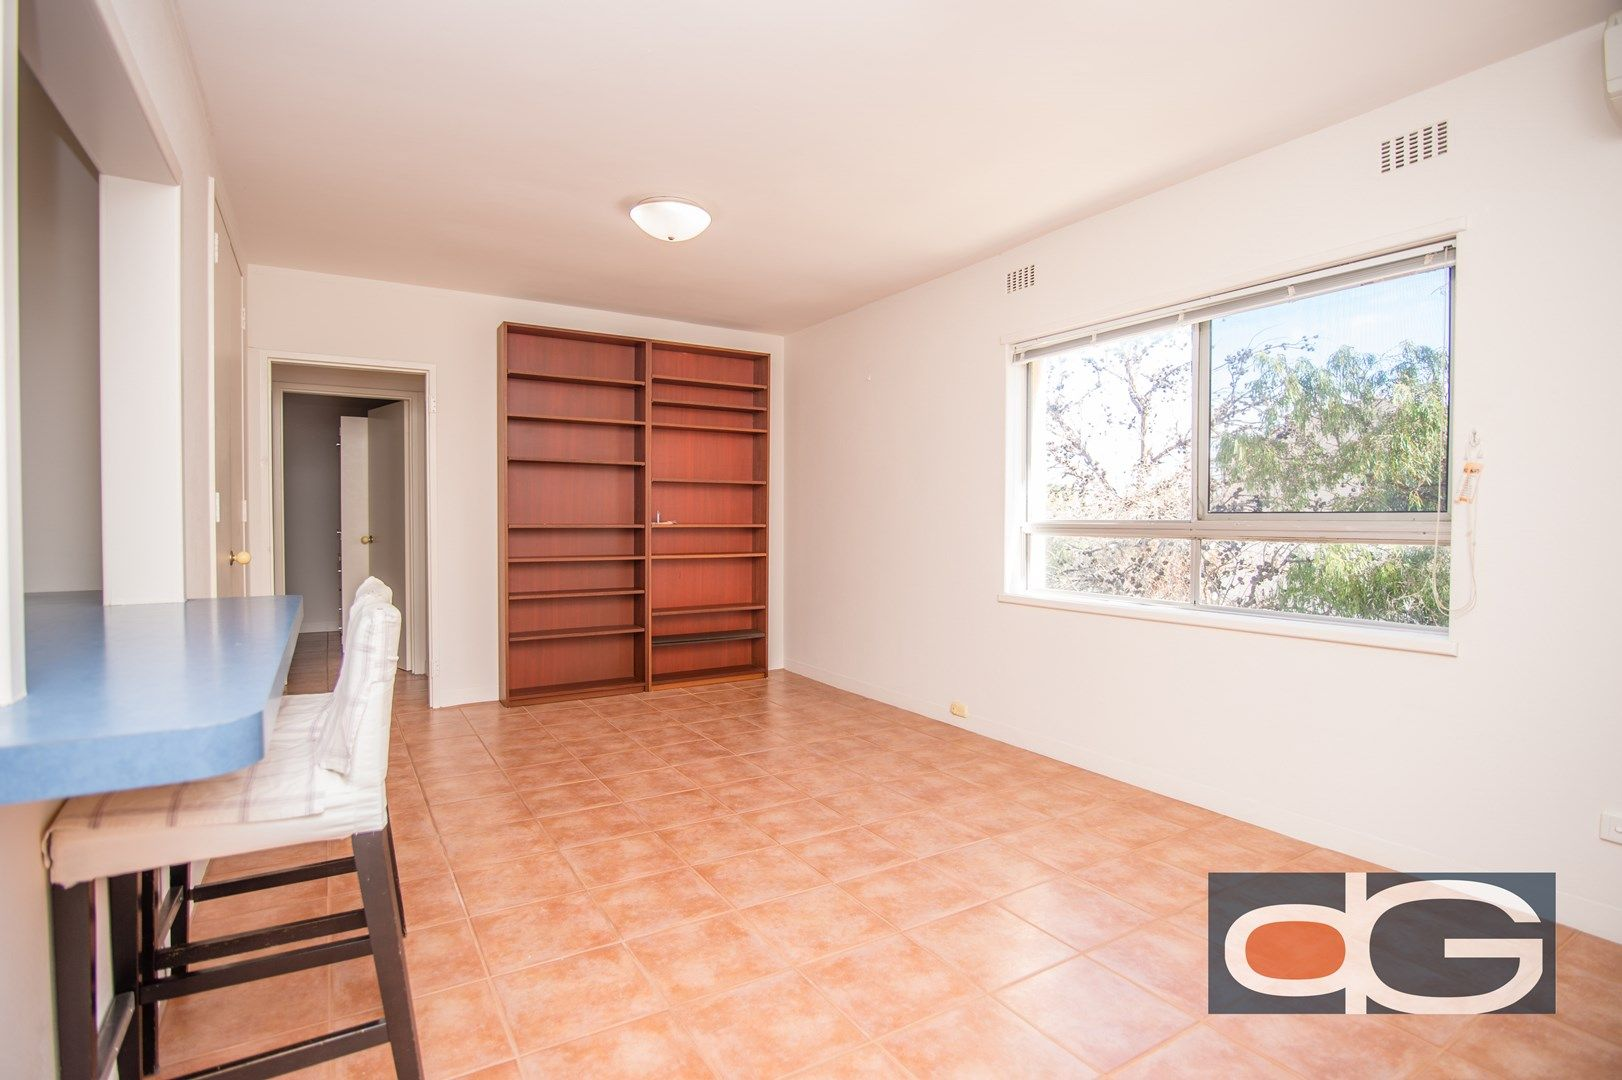 15/94 Lefroy Road, Beaconsfield WA 6162, Image 0